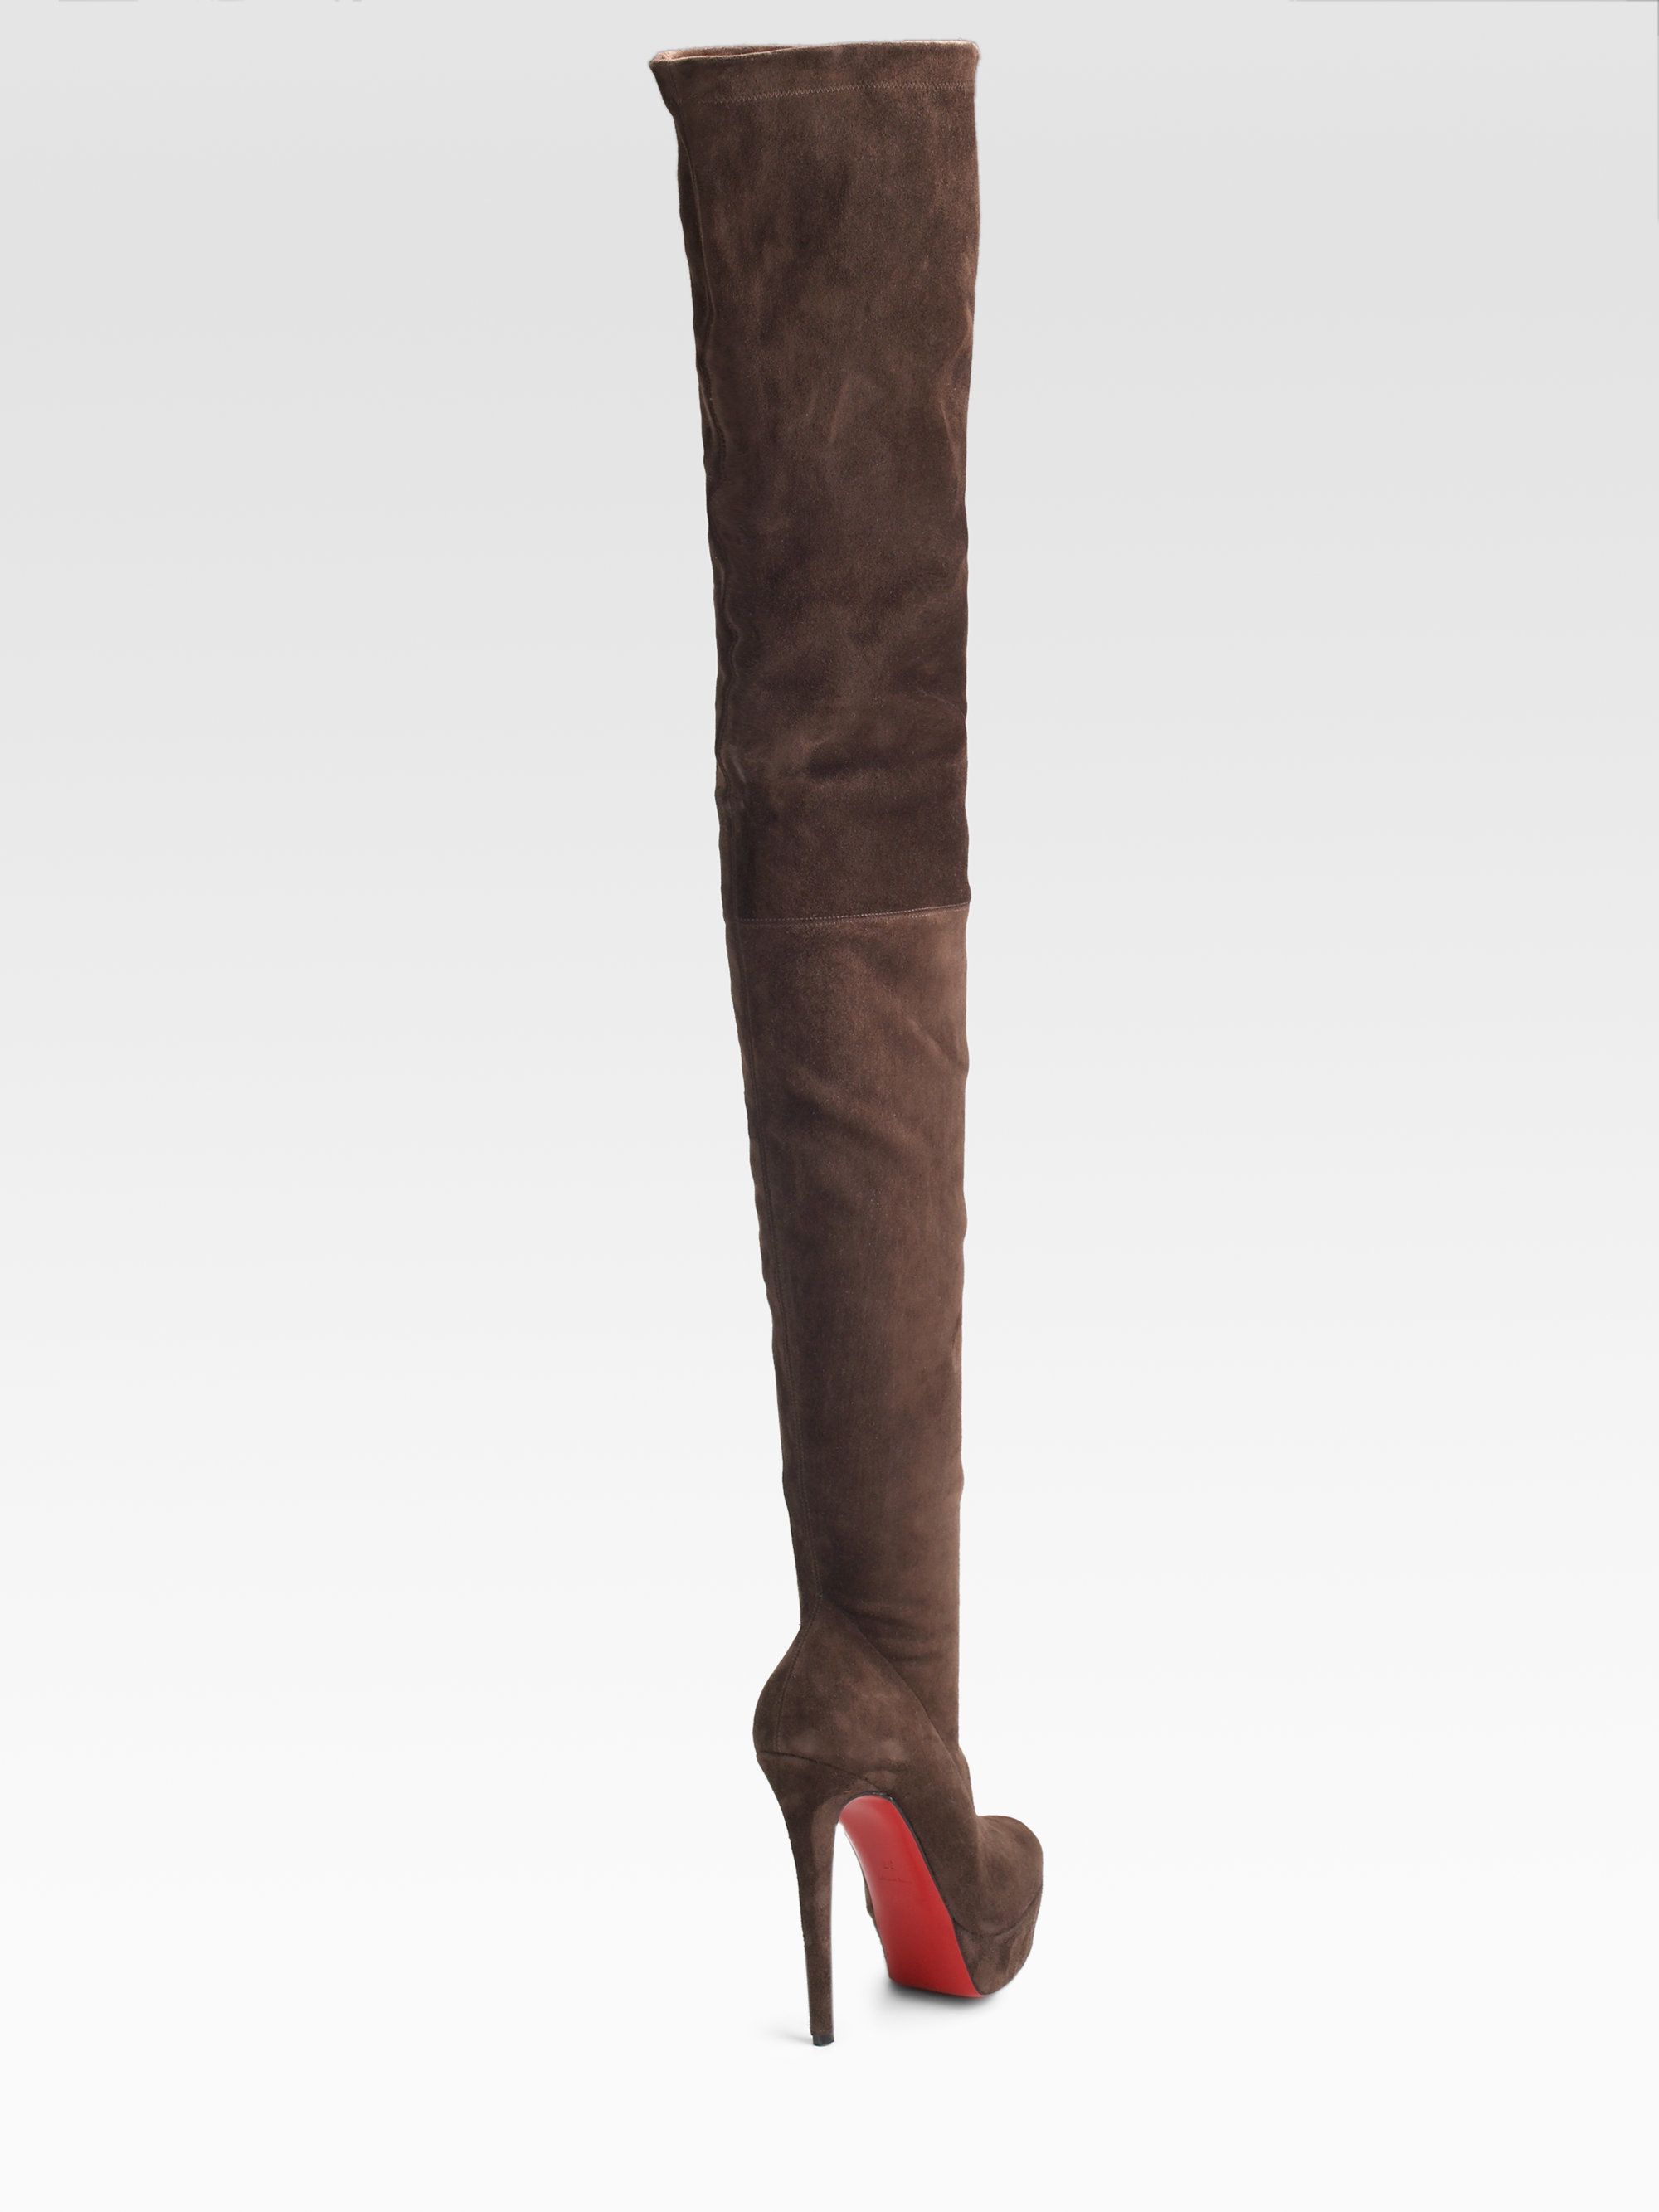 sale retailer b0779 279f7 Christian Louboutin Black Gazolina Suede Overtheknee Boots